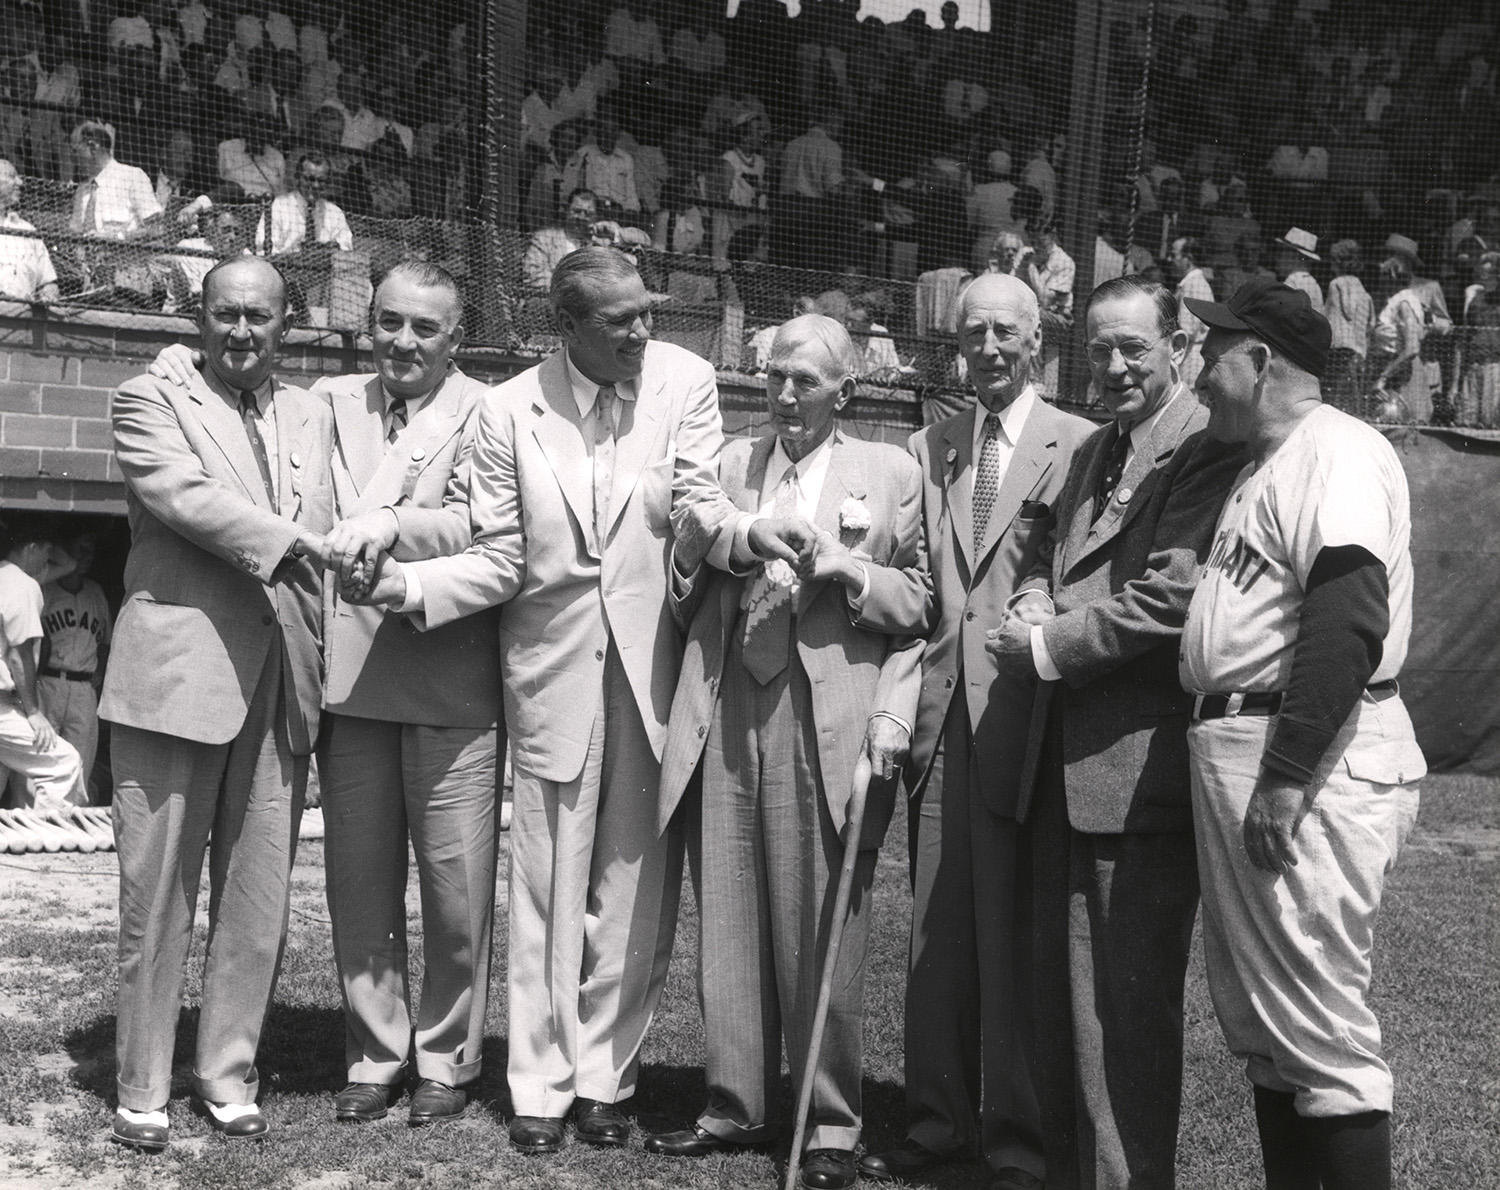 The two new BBWAA-elected Hall of Fame inductees pose with existing members of the Hall of Fame, on Doubleday Field. Picture from left to right, is Ty Cobb, Al Simmons, Dizzy Dean, Cy Young, Connie Mack, Ed Walsh and Rogers Hornsby. (National Baseball Hall of Fame)